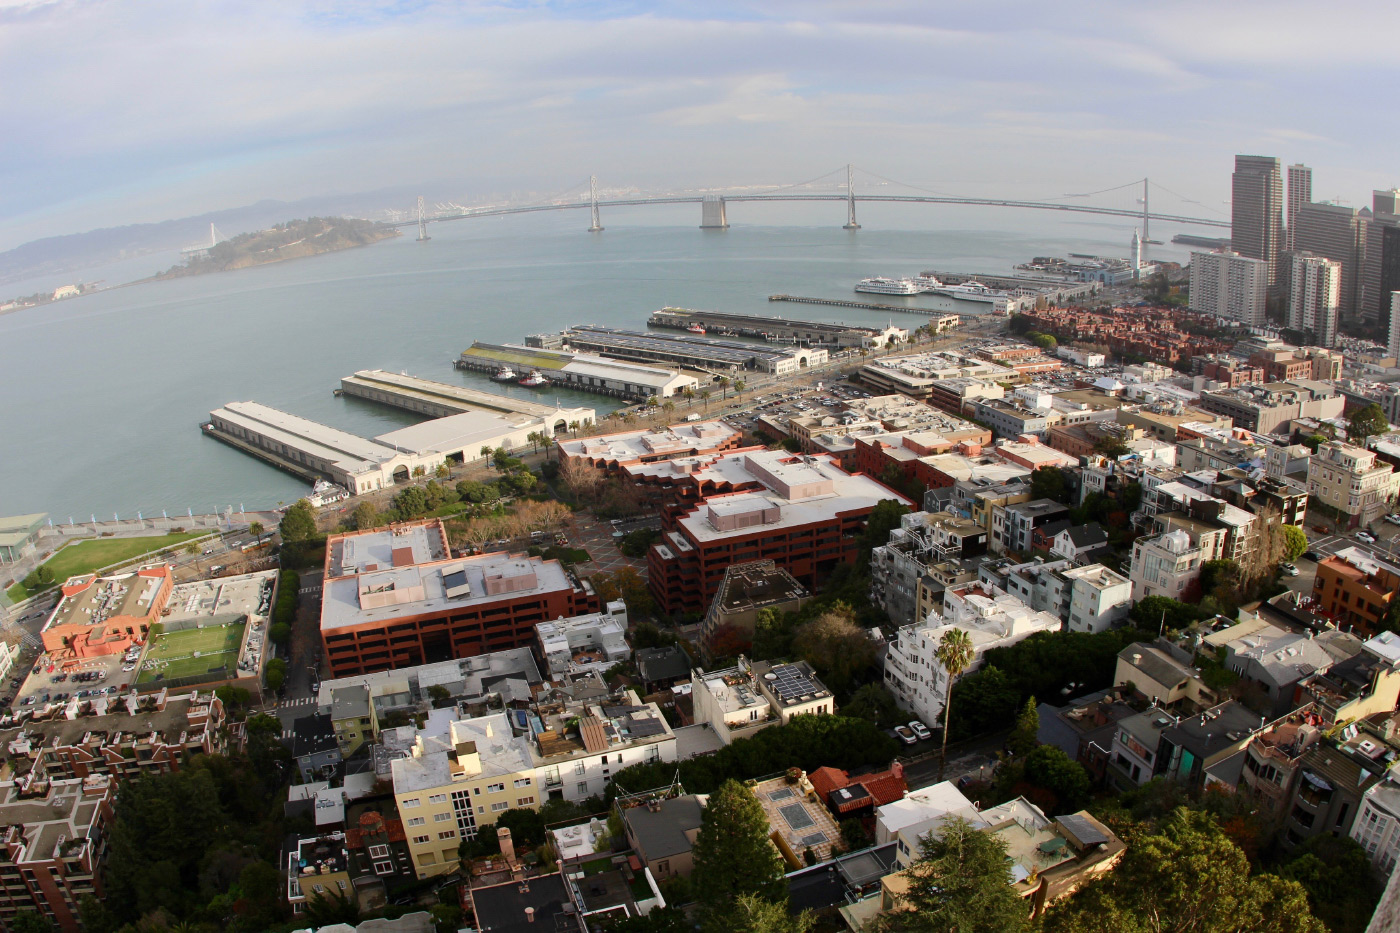 An aerial photo of a bay and waterfront neighborhood spanned by a bridge